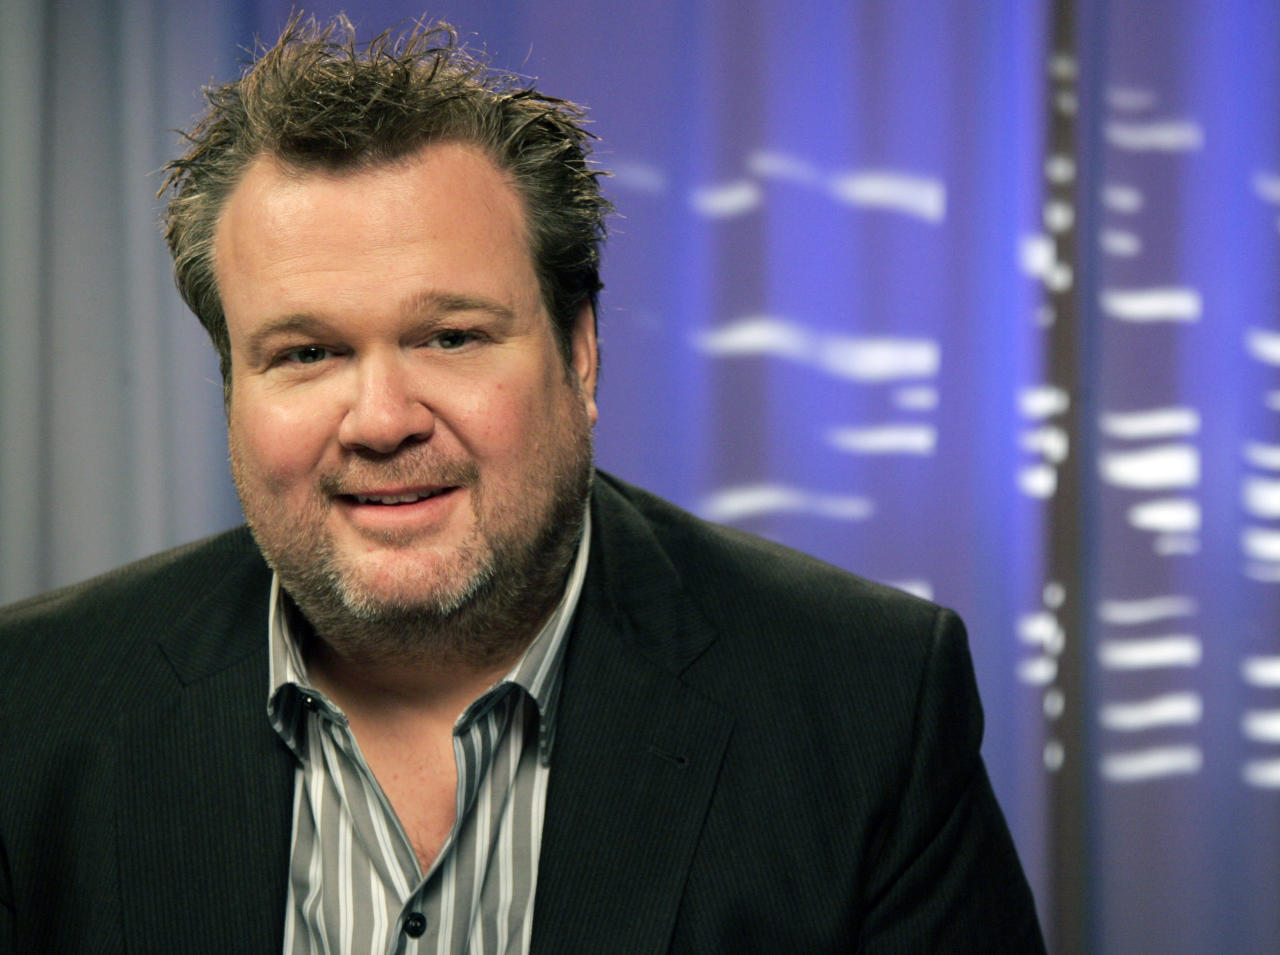 Actor Eric Stonestreet poses for a portrait in New York, Wednesday, March 24, 2010. (AP Photo/Jeff Christensen)